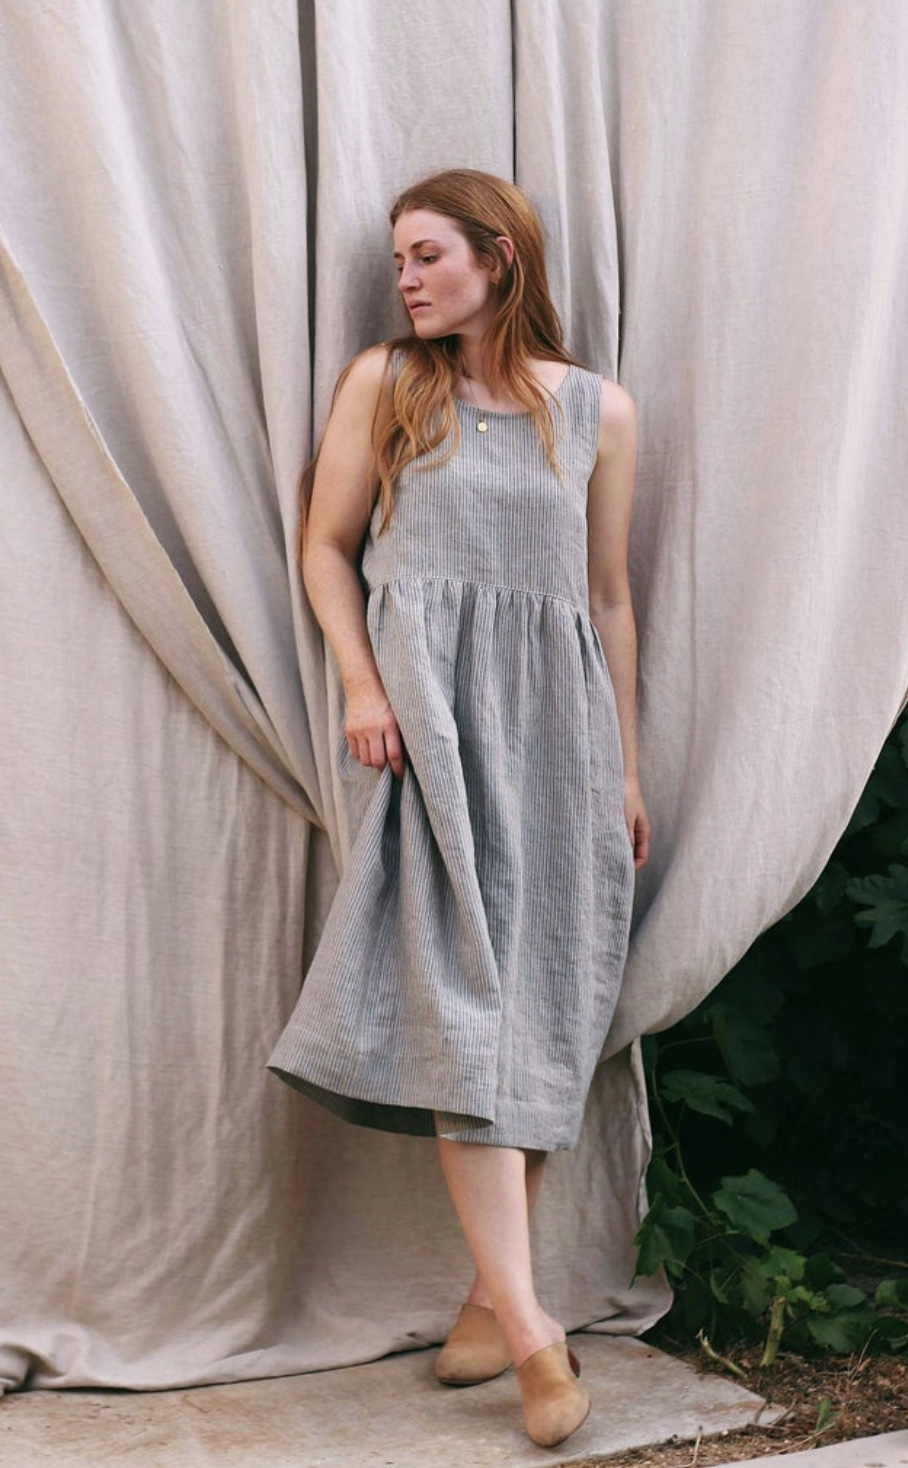 Demeter Dress (and top) sewing pattern from Anna Allen